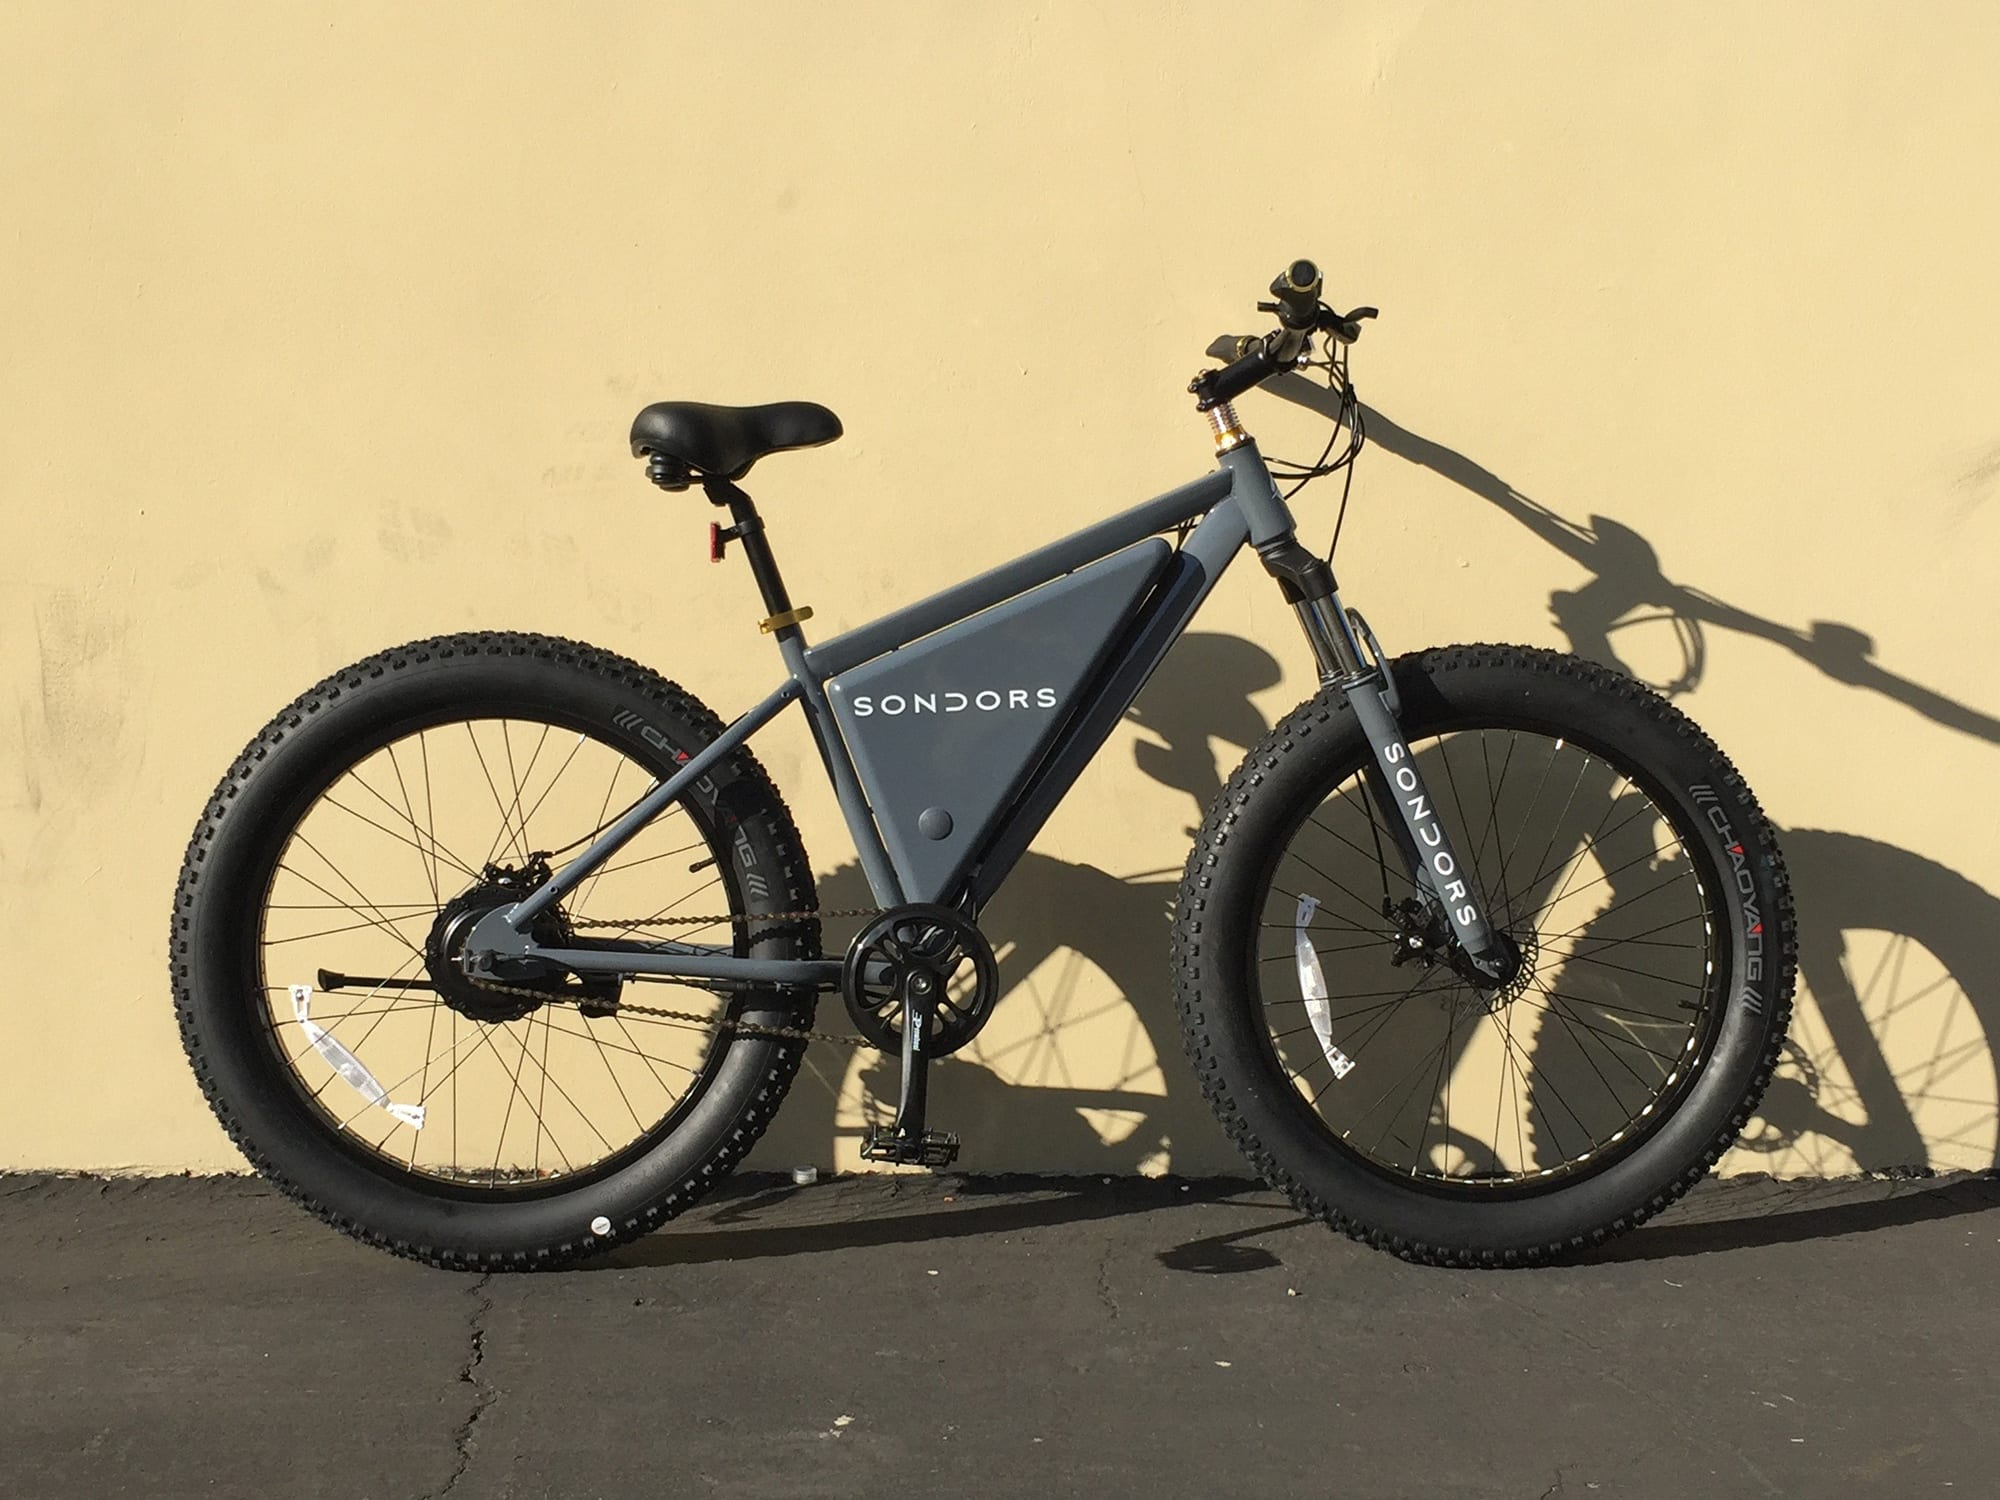 Fat Bike Sondors Fat Bike Review Prices Specs Videos Photos